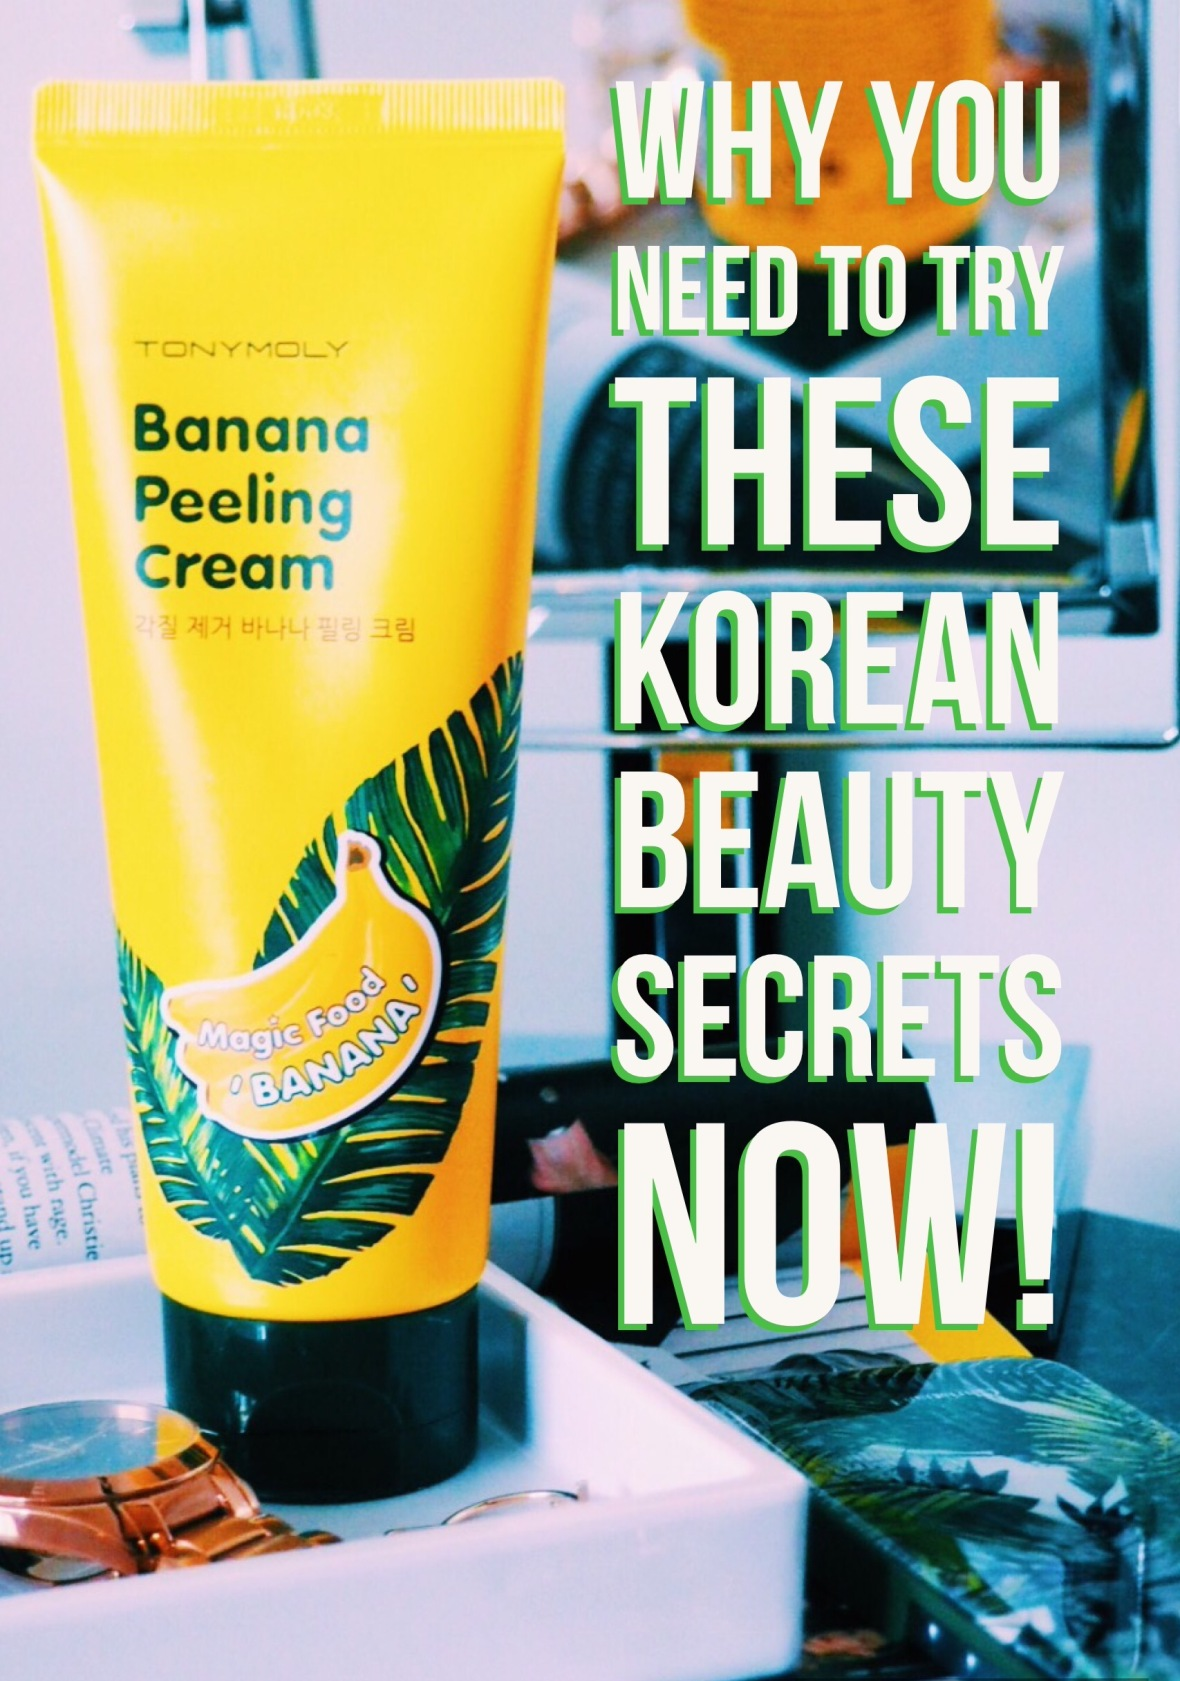 skincare, Korea, Korean beauty, tony moly, banana, cleanser, facial peel, natural skincare